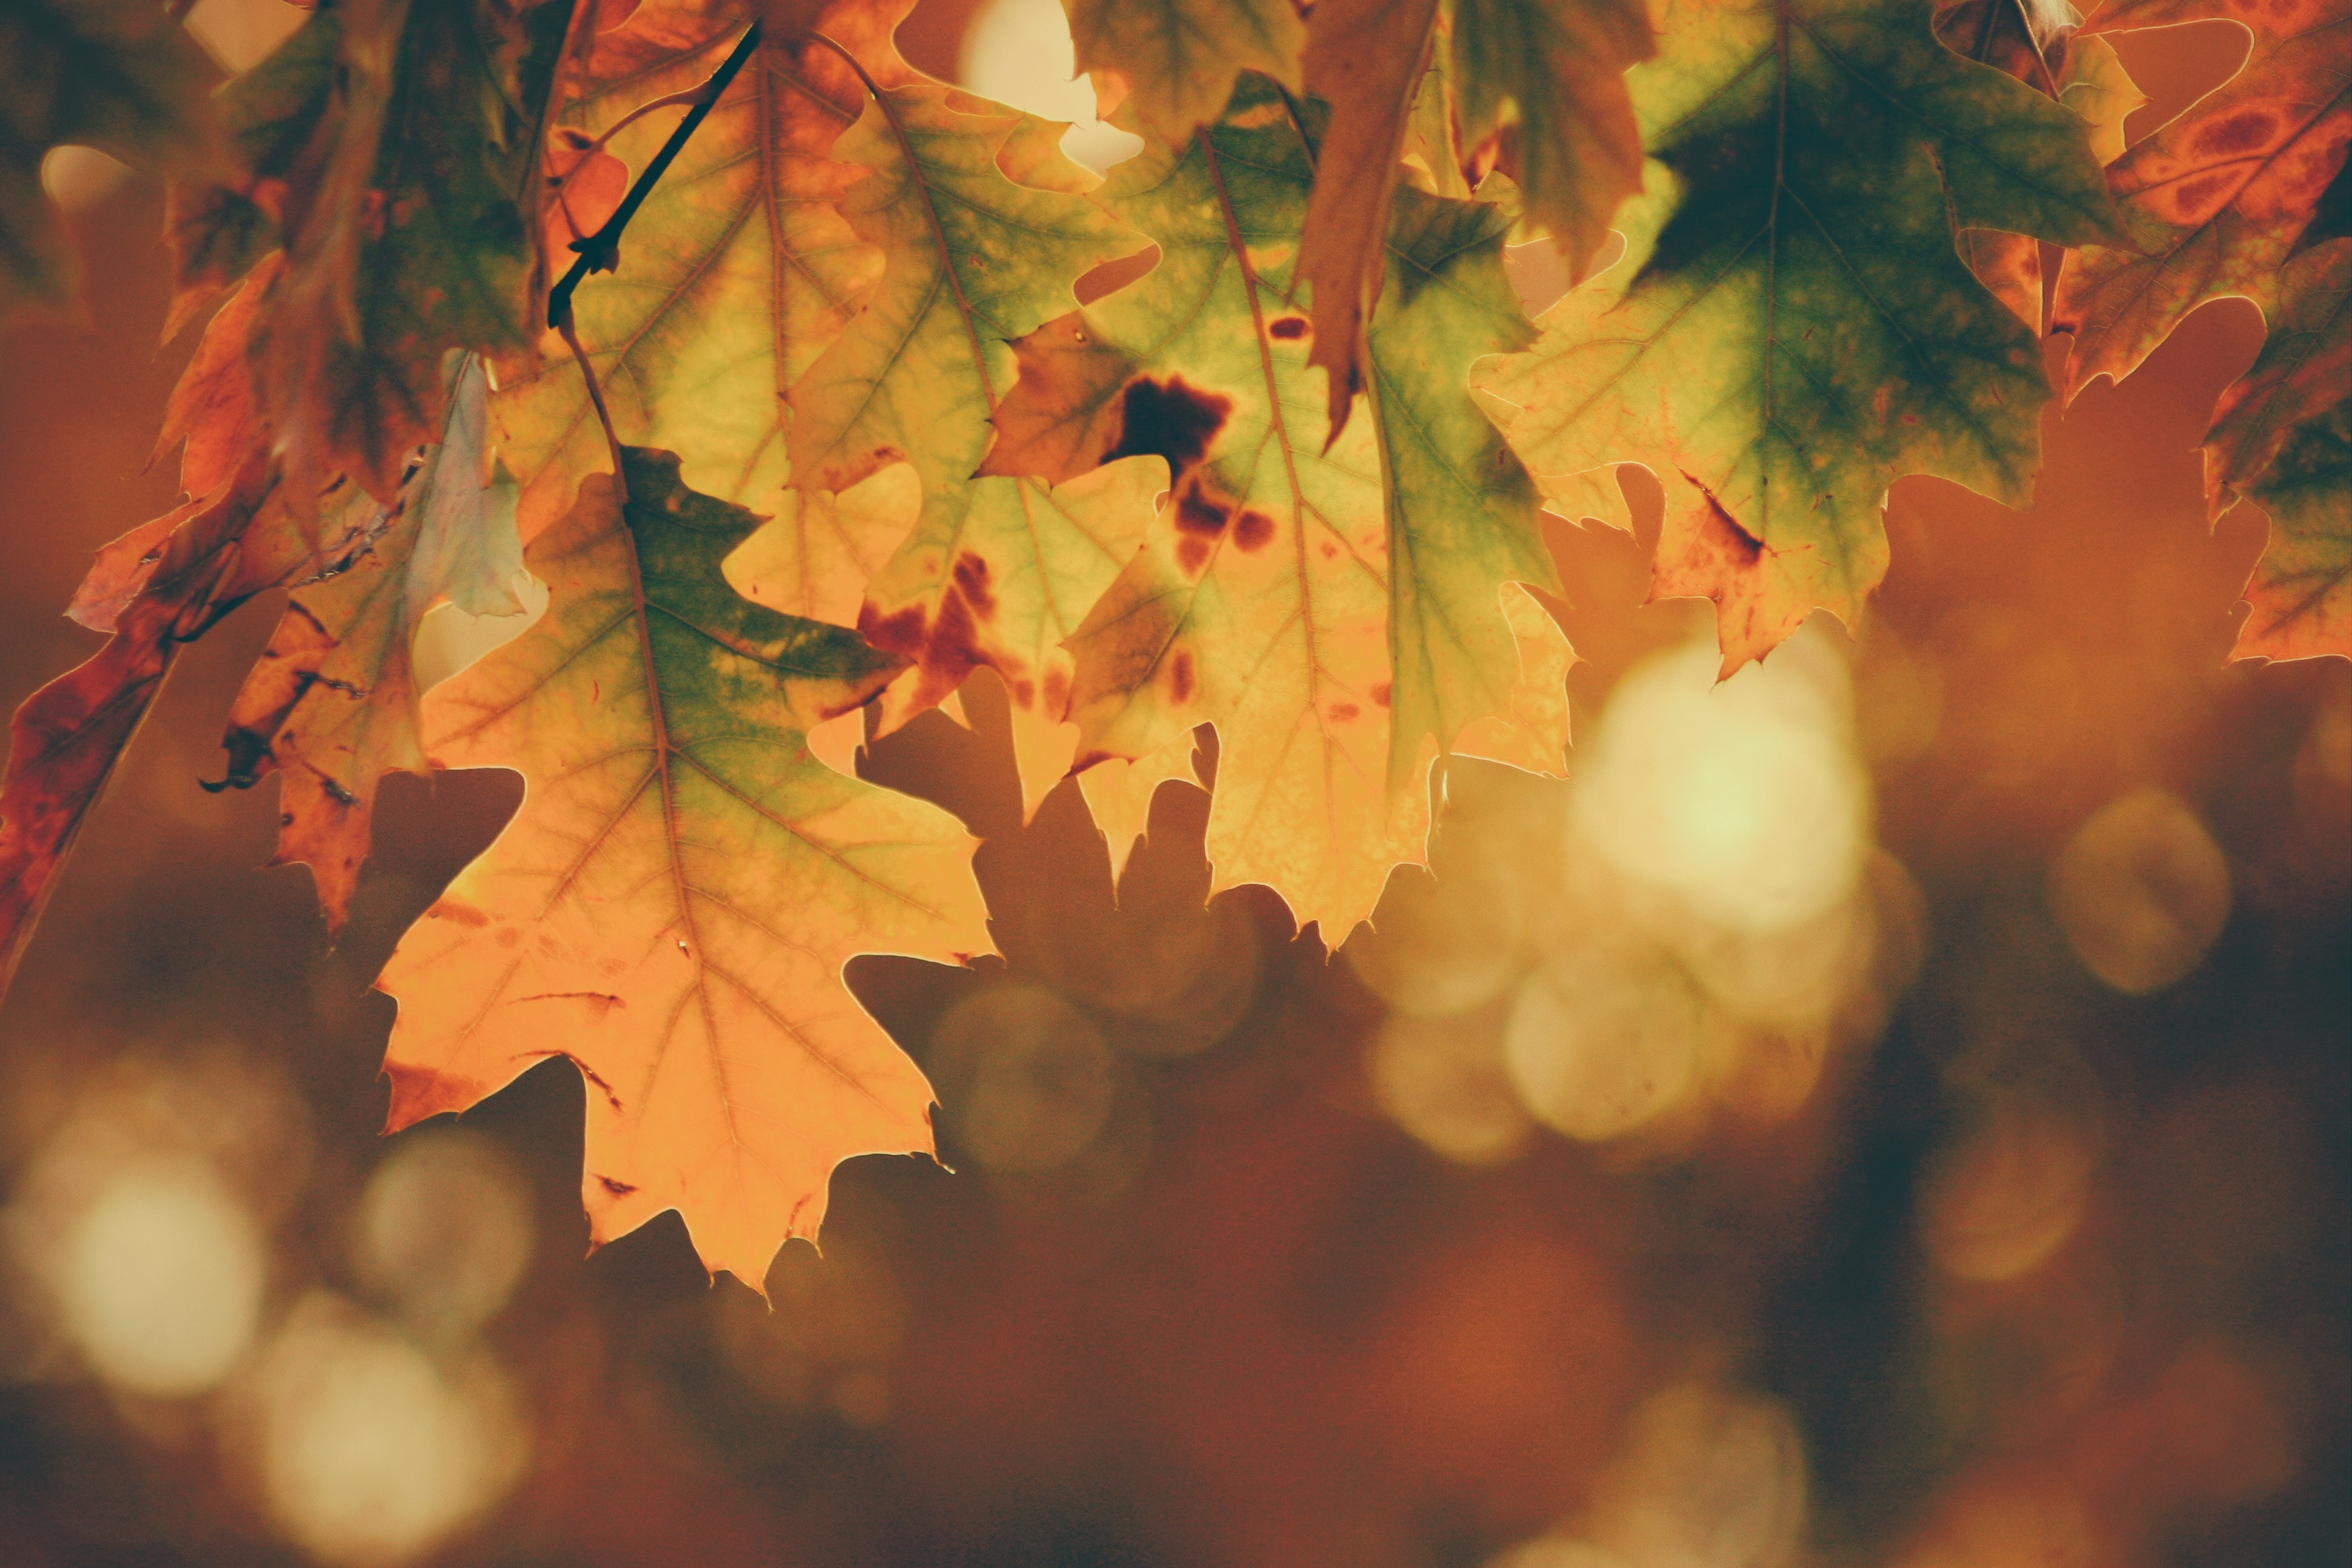 autumn leaves, orange, yellow, and green